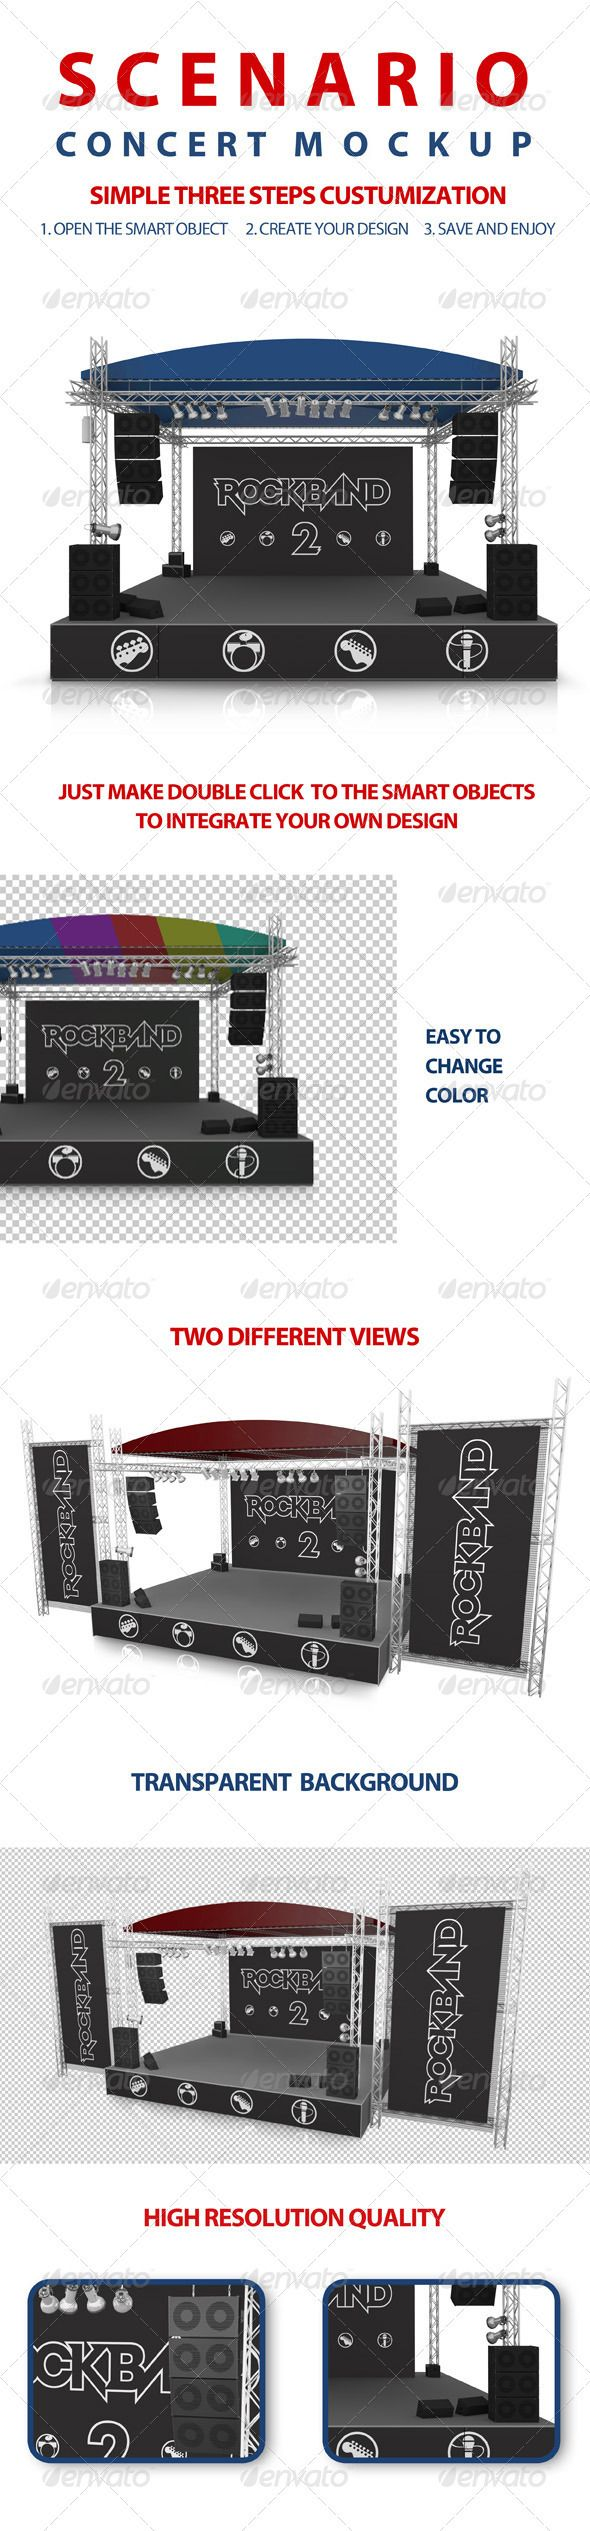 Concert Scenery Mock-up  #GraphicRiver         This mock-up helps you to show your brand or designs in your project this package contains 2 realistic 3D Render.  	 2 different angle views that you can edit very easy with a 3 simple steps.  	 Specific and clear text and video screener documentation.  	 Free support if you need  	 We usually respond to support requests within 48 hours on weekdays, depending on the number of requests in queue.  Others Mockup 	…